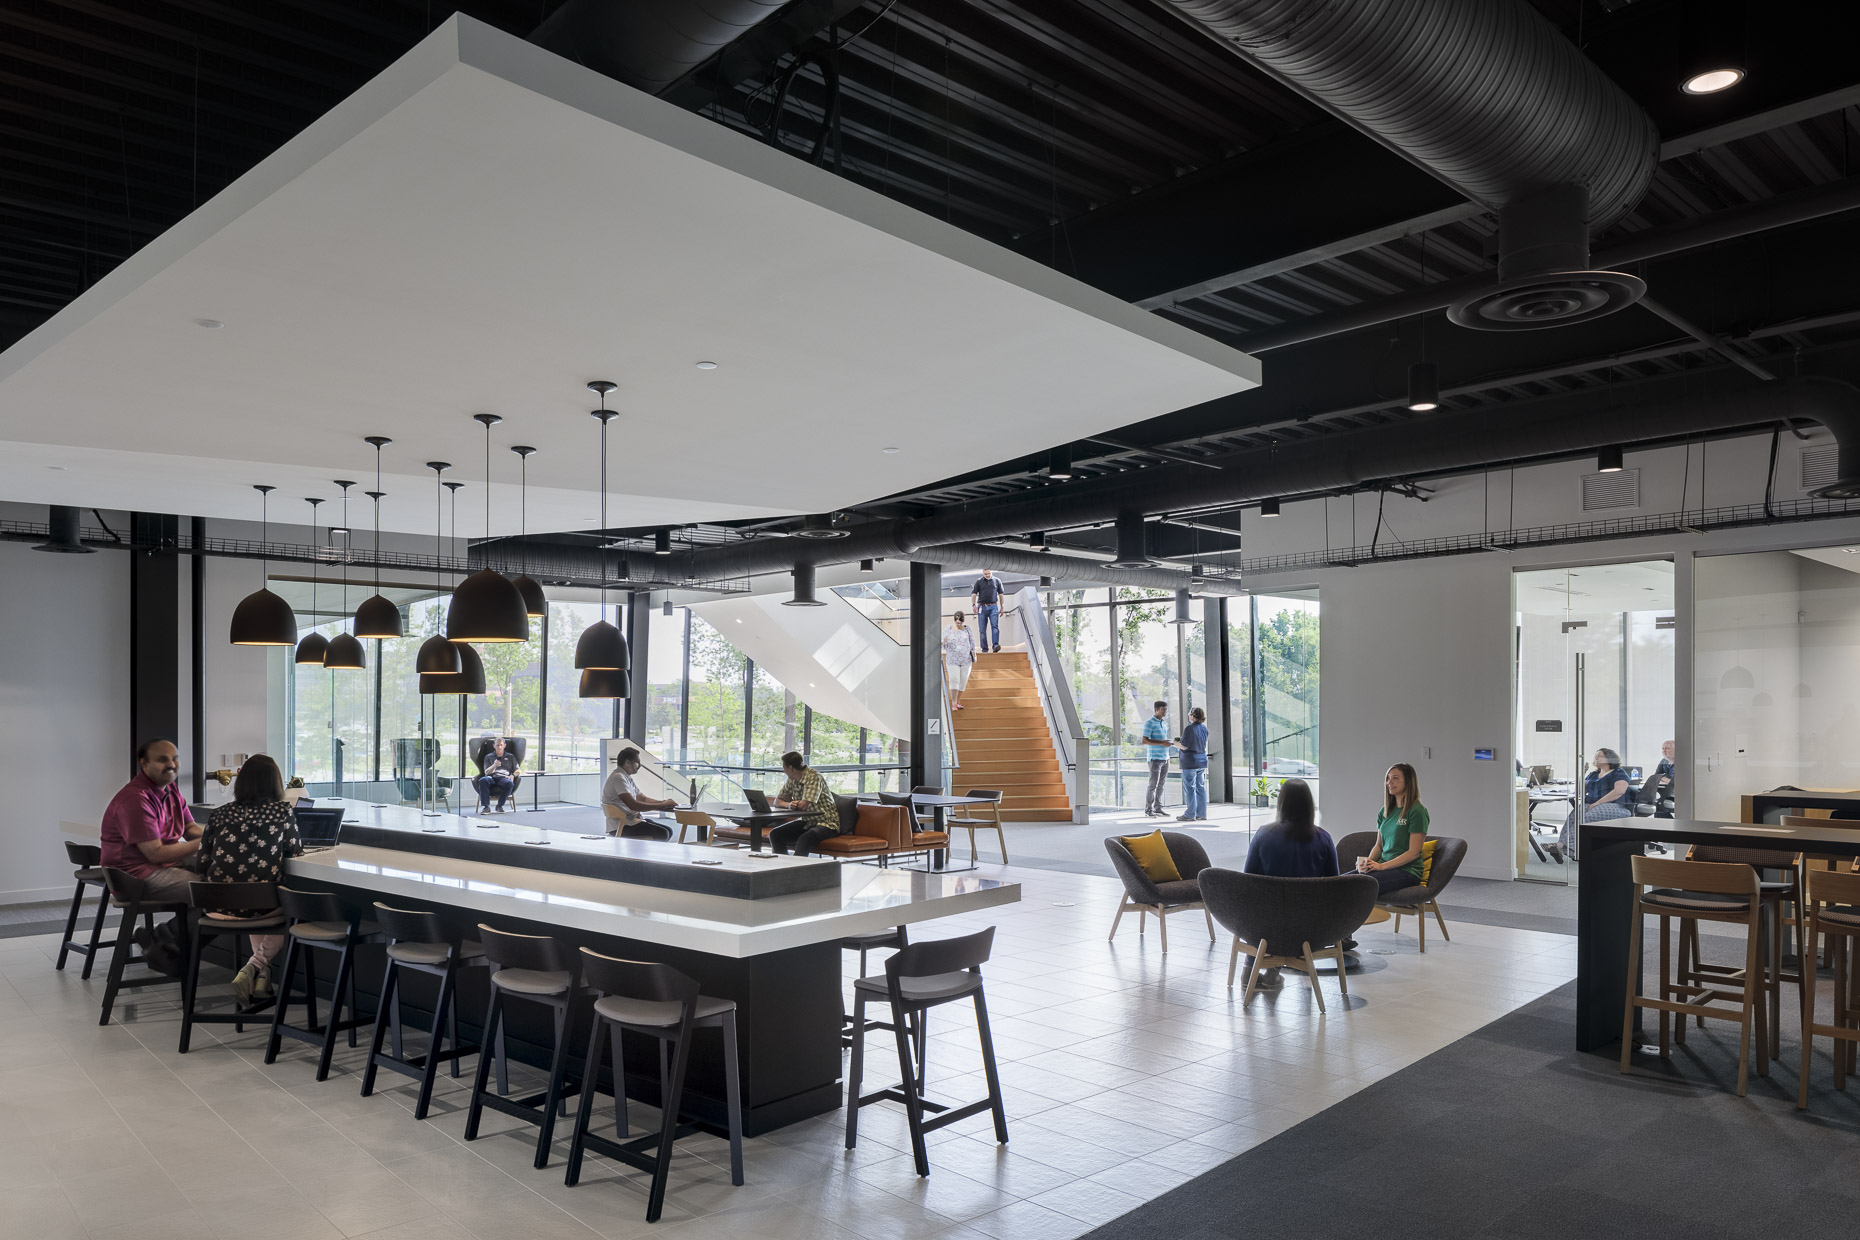 KAR Global Headquarters by Ratio Architects photographed by Brad Feinknopf based in Columbus, Ohio